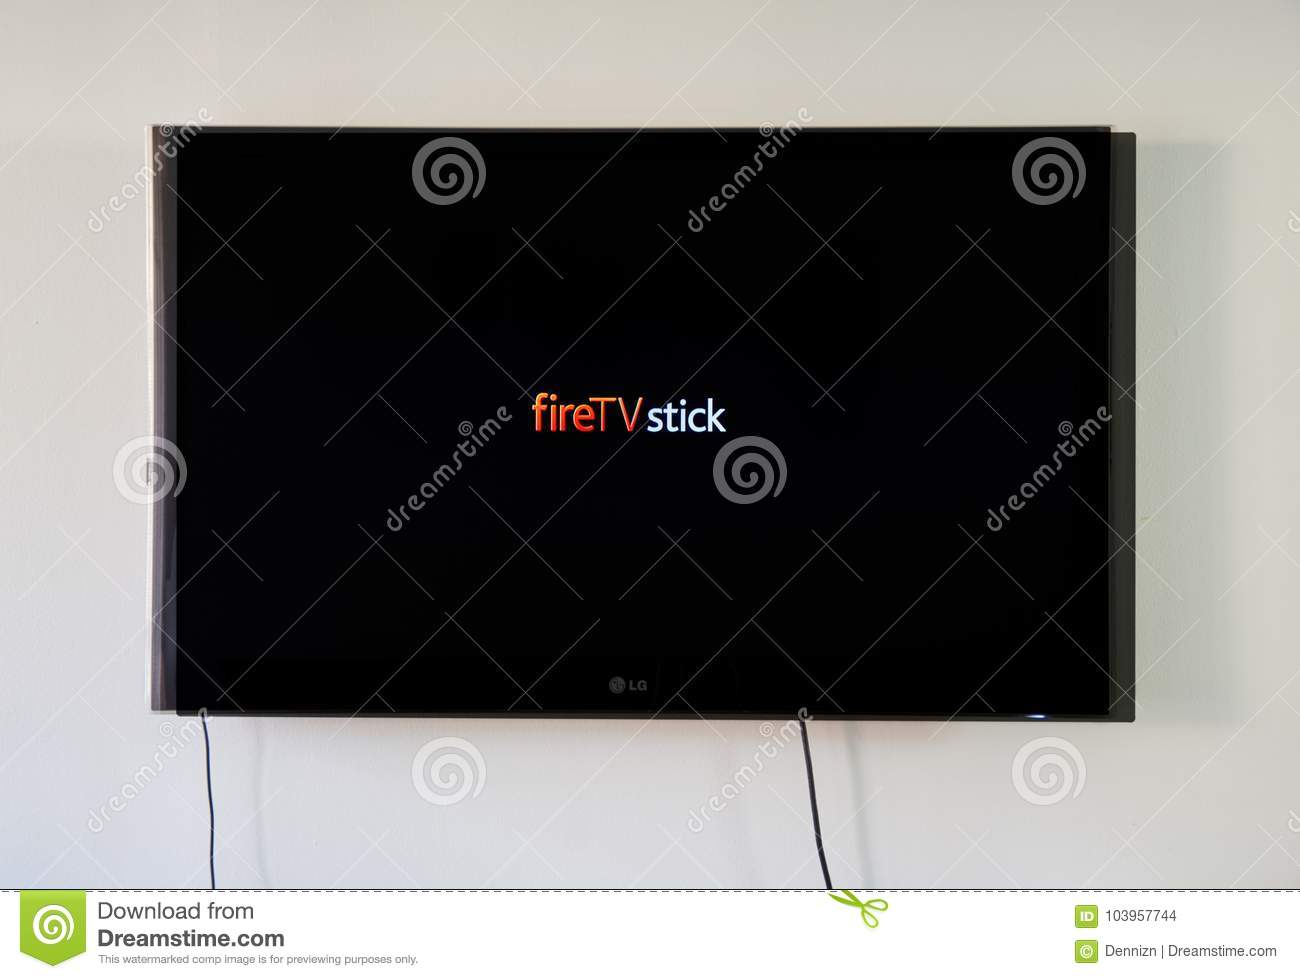 Amazon Fire TV Stick On LG TV Editorial Stock Image - Image